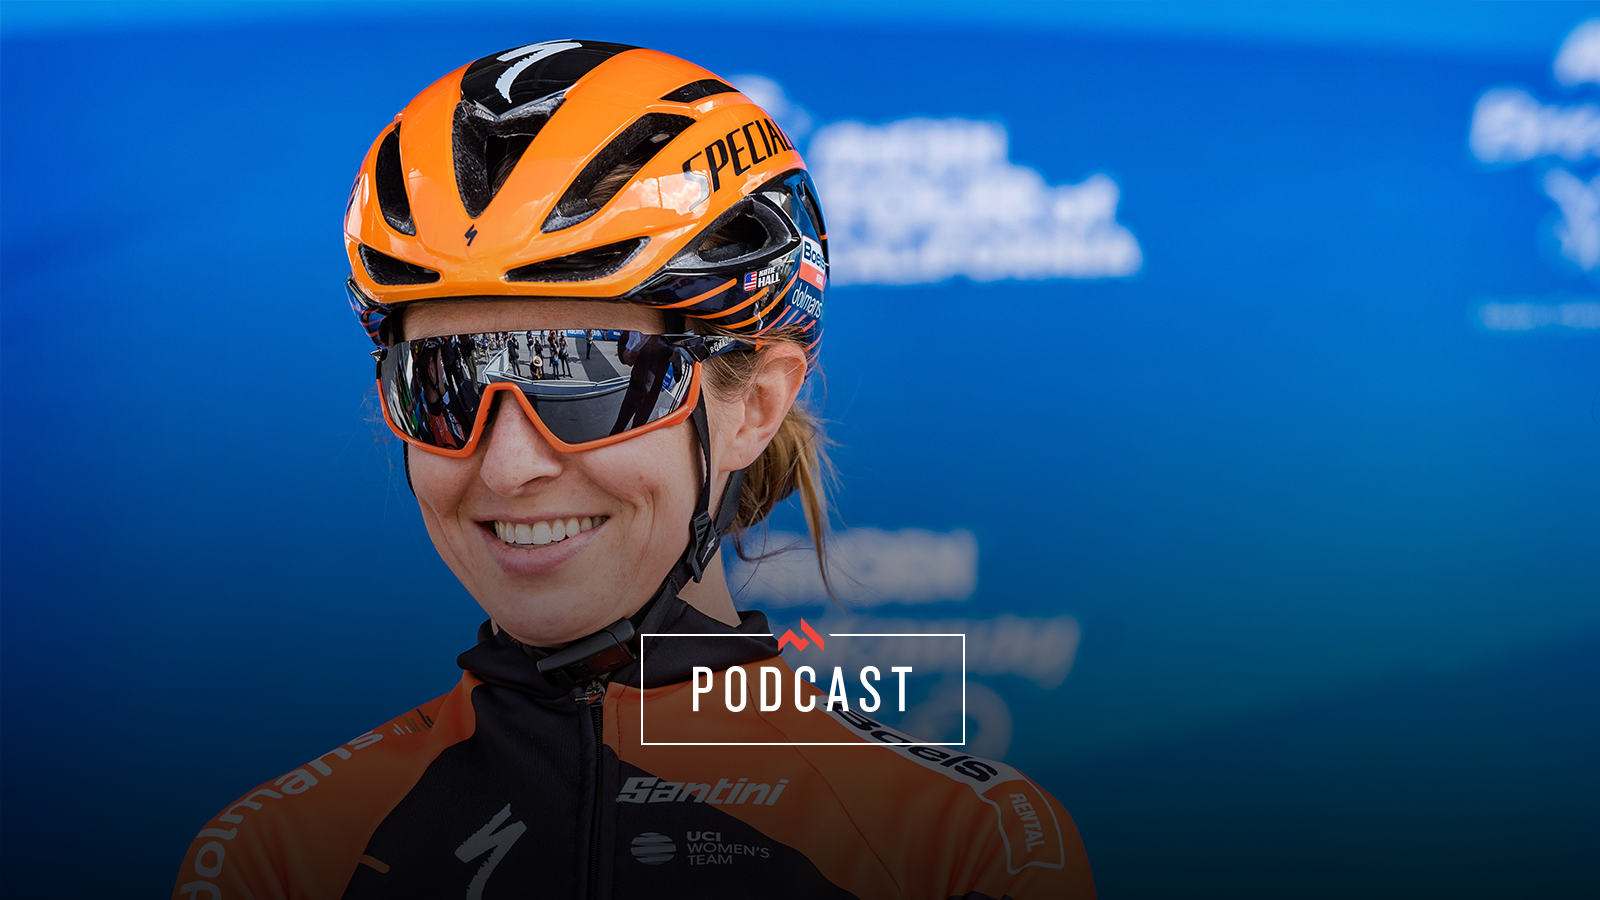 Freewheeling Podcast: Katie Hall chats retirement, her future, and her career in cycling